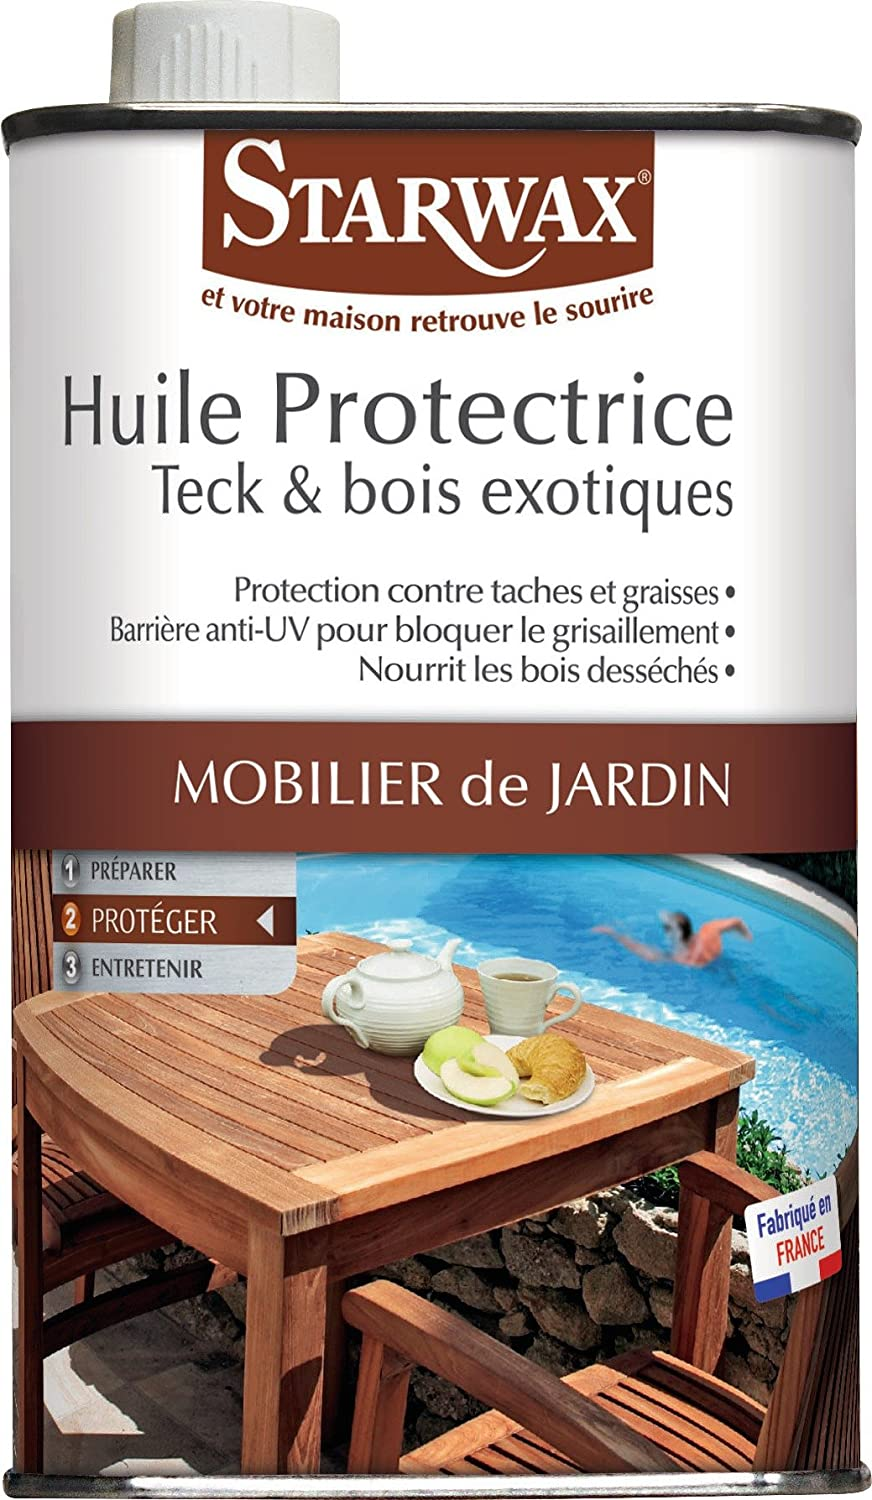 STARWAX Huile protectrice Bois exte.Teck 500ml BRUNEL